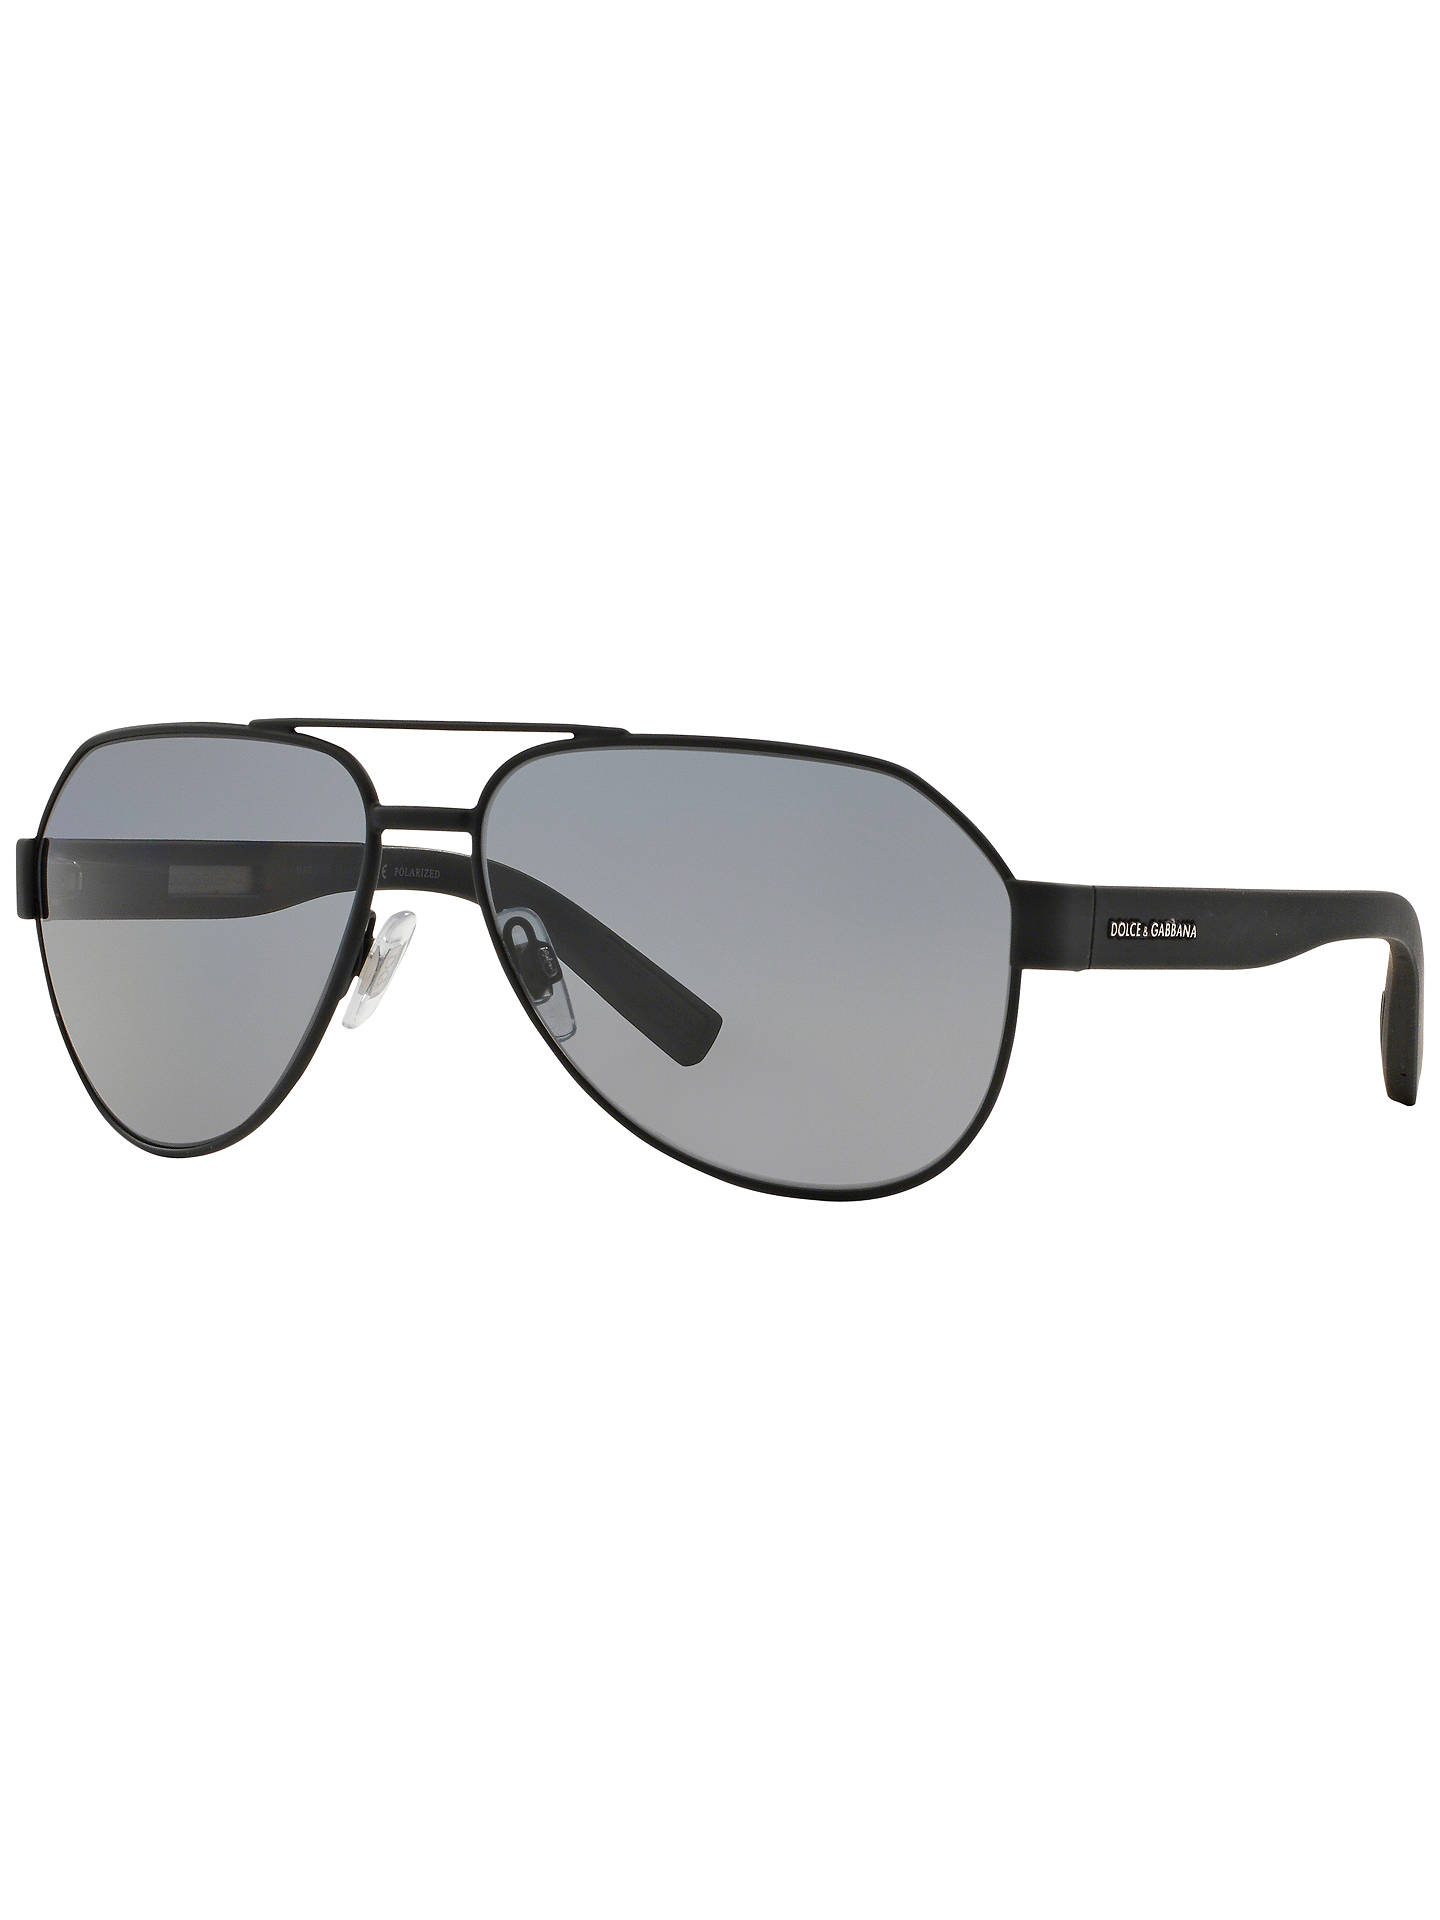 219ff20e71fb Buy Dolce   Gabbana DG2149 Polarised Aviator Sunglasses